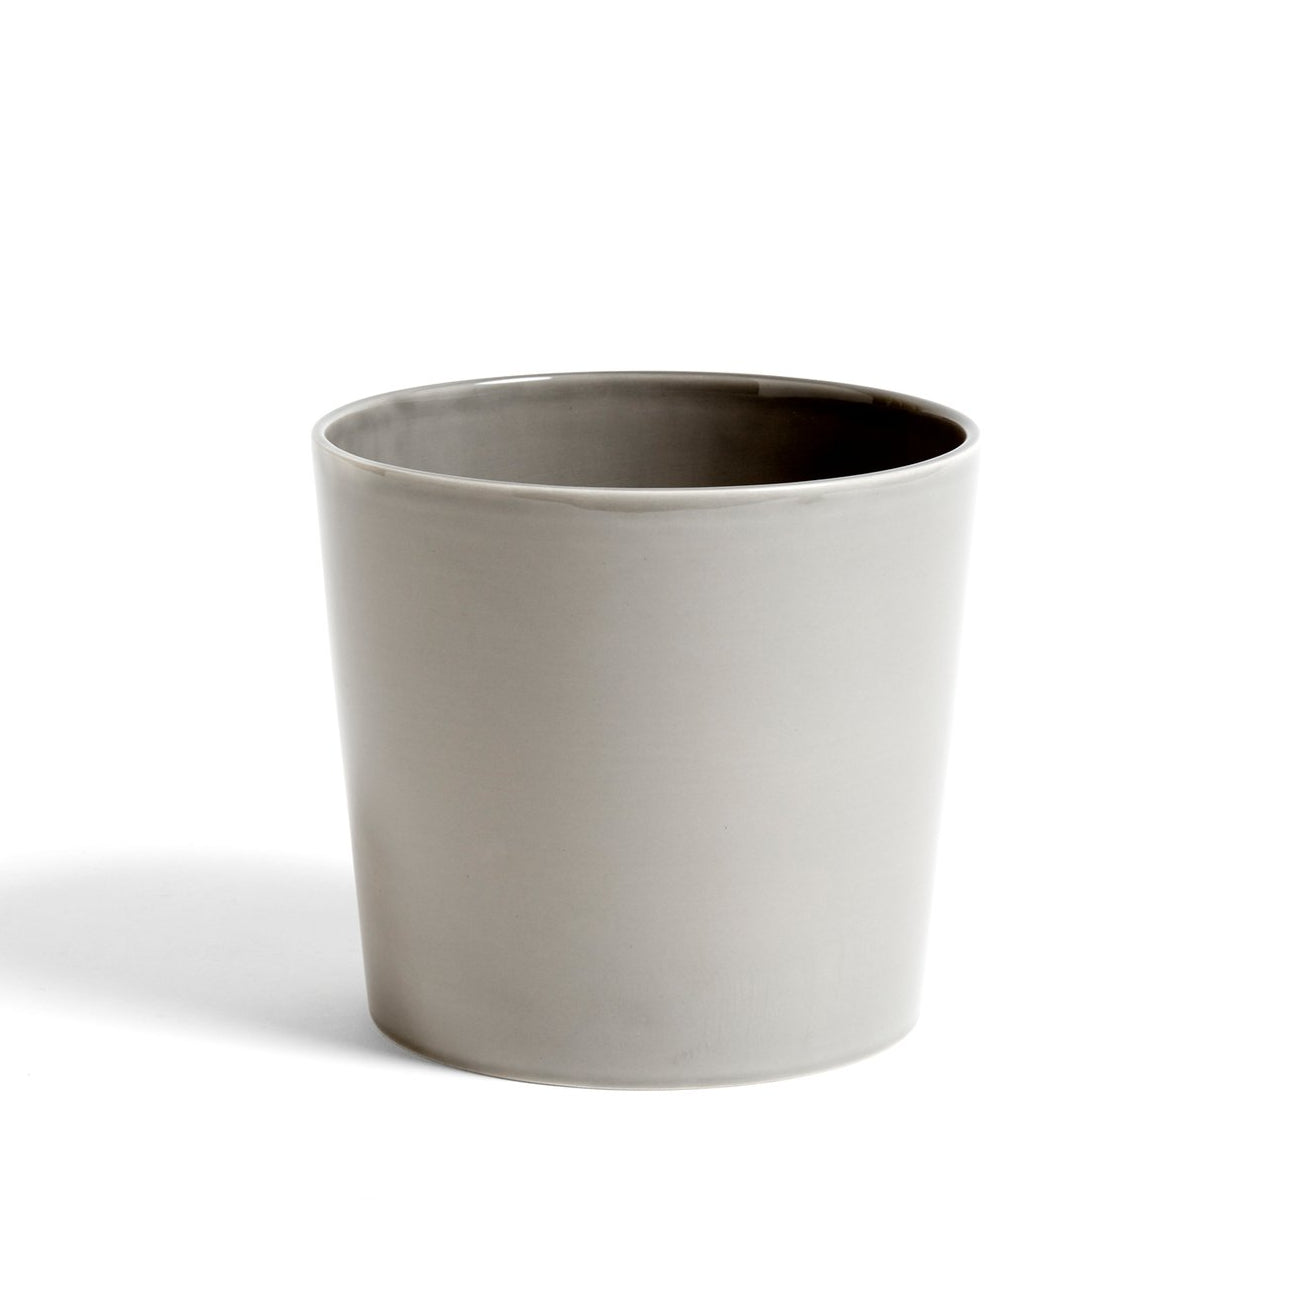 HAY Botanical Family Pot L: Light Grey - The Union Project